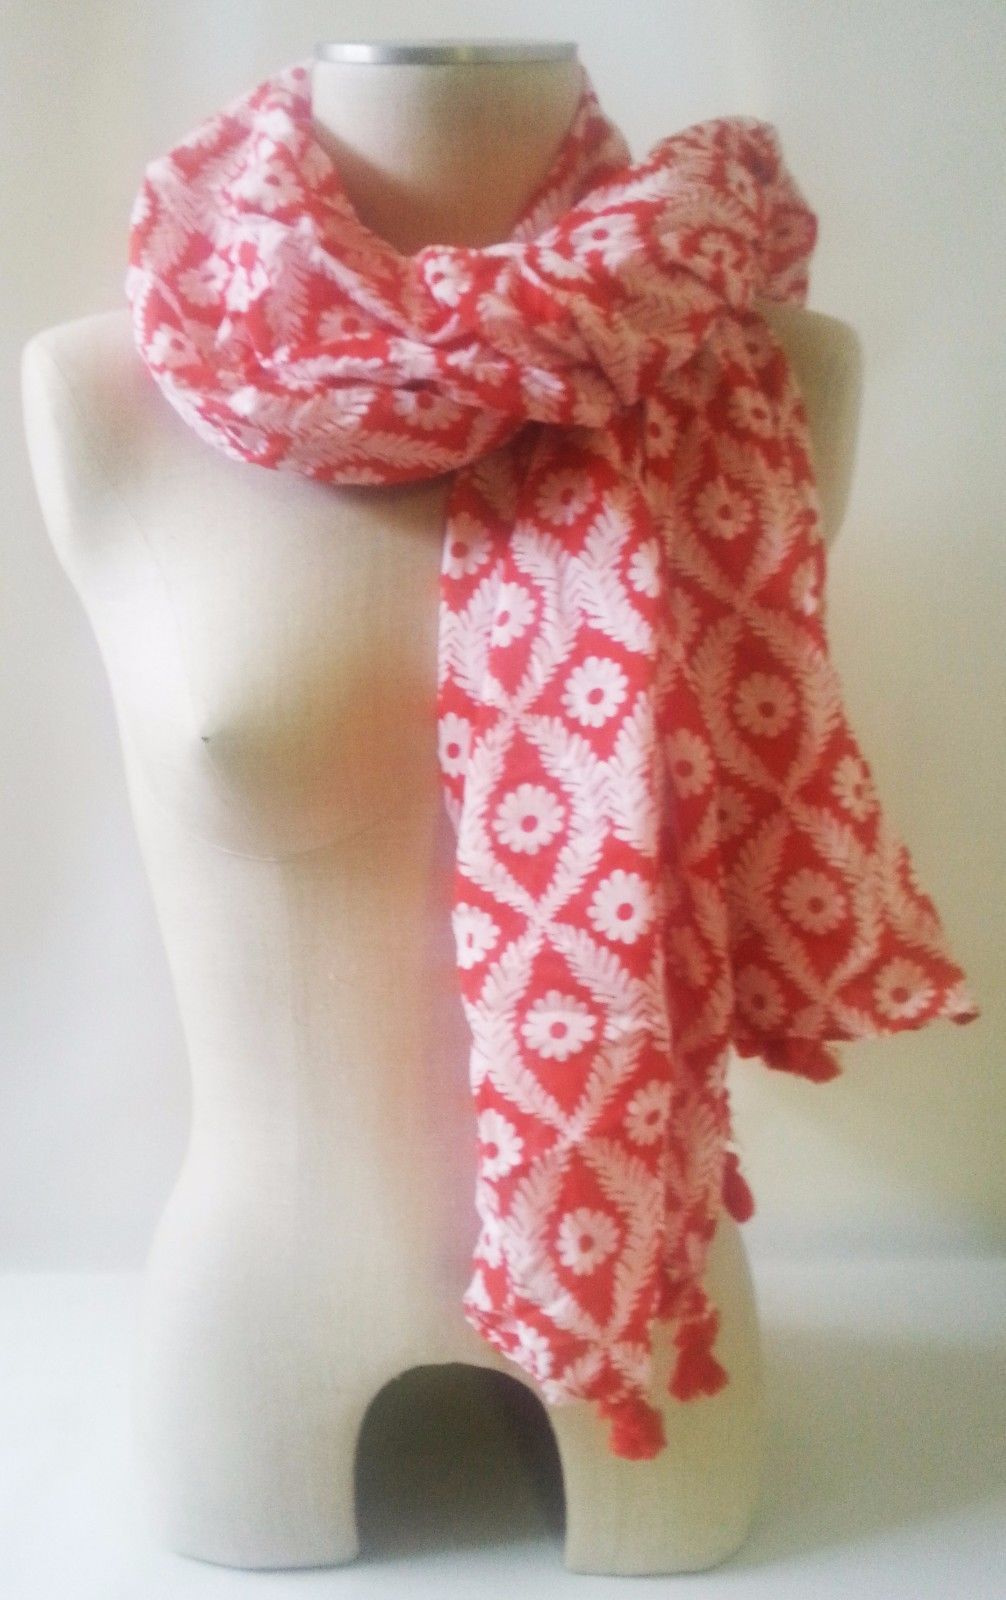 "Stella & Dot Capri Wrap Geranium Pink Floral Cotton Blend 44""x54"" Scarf With bag"